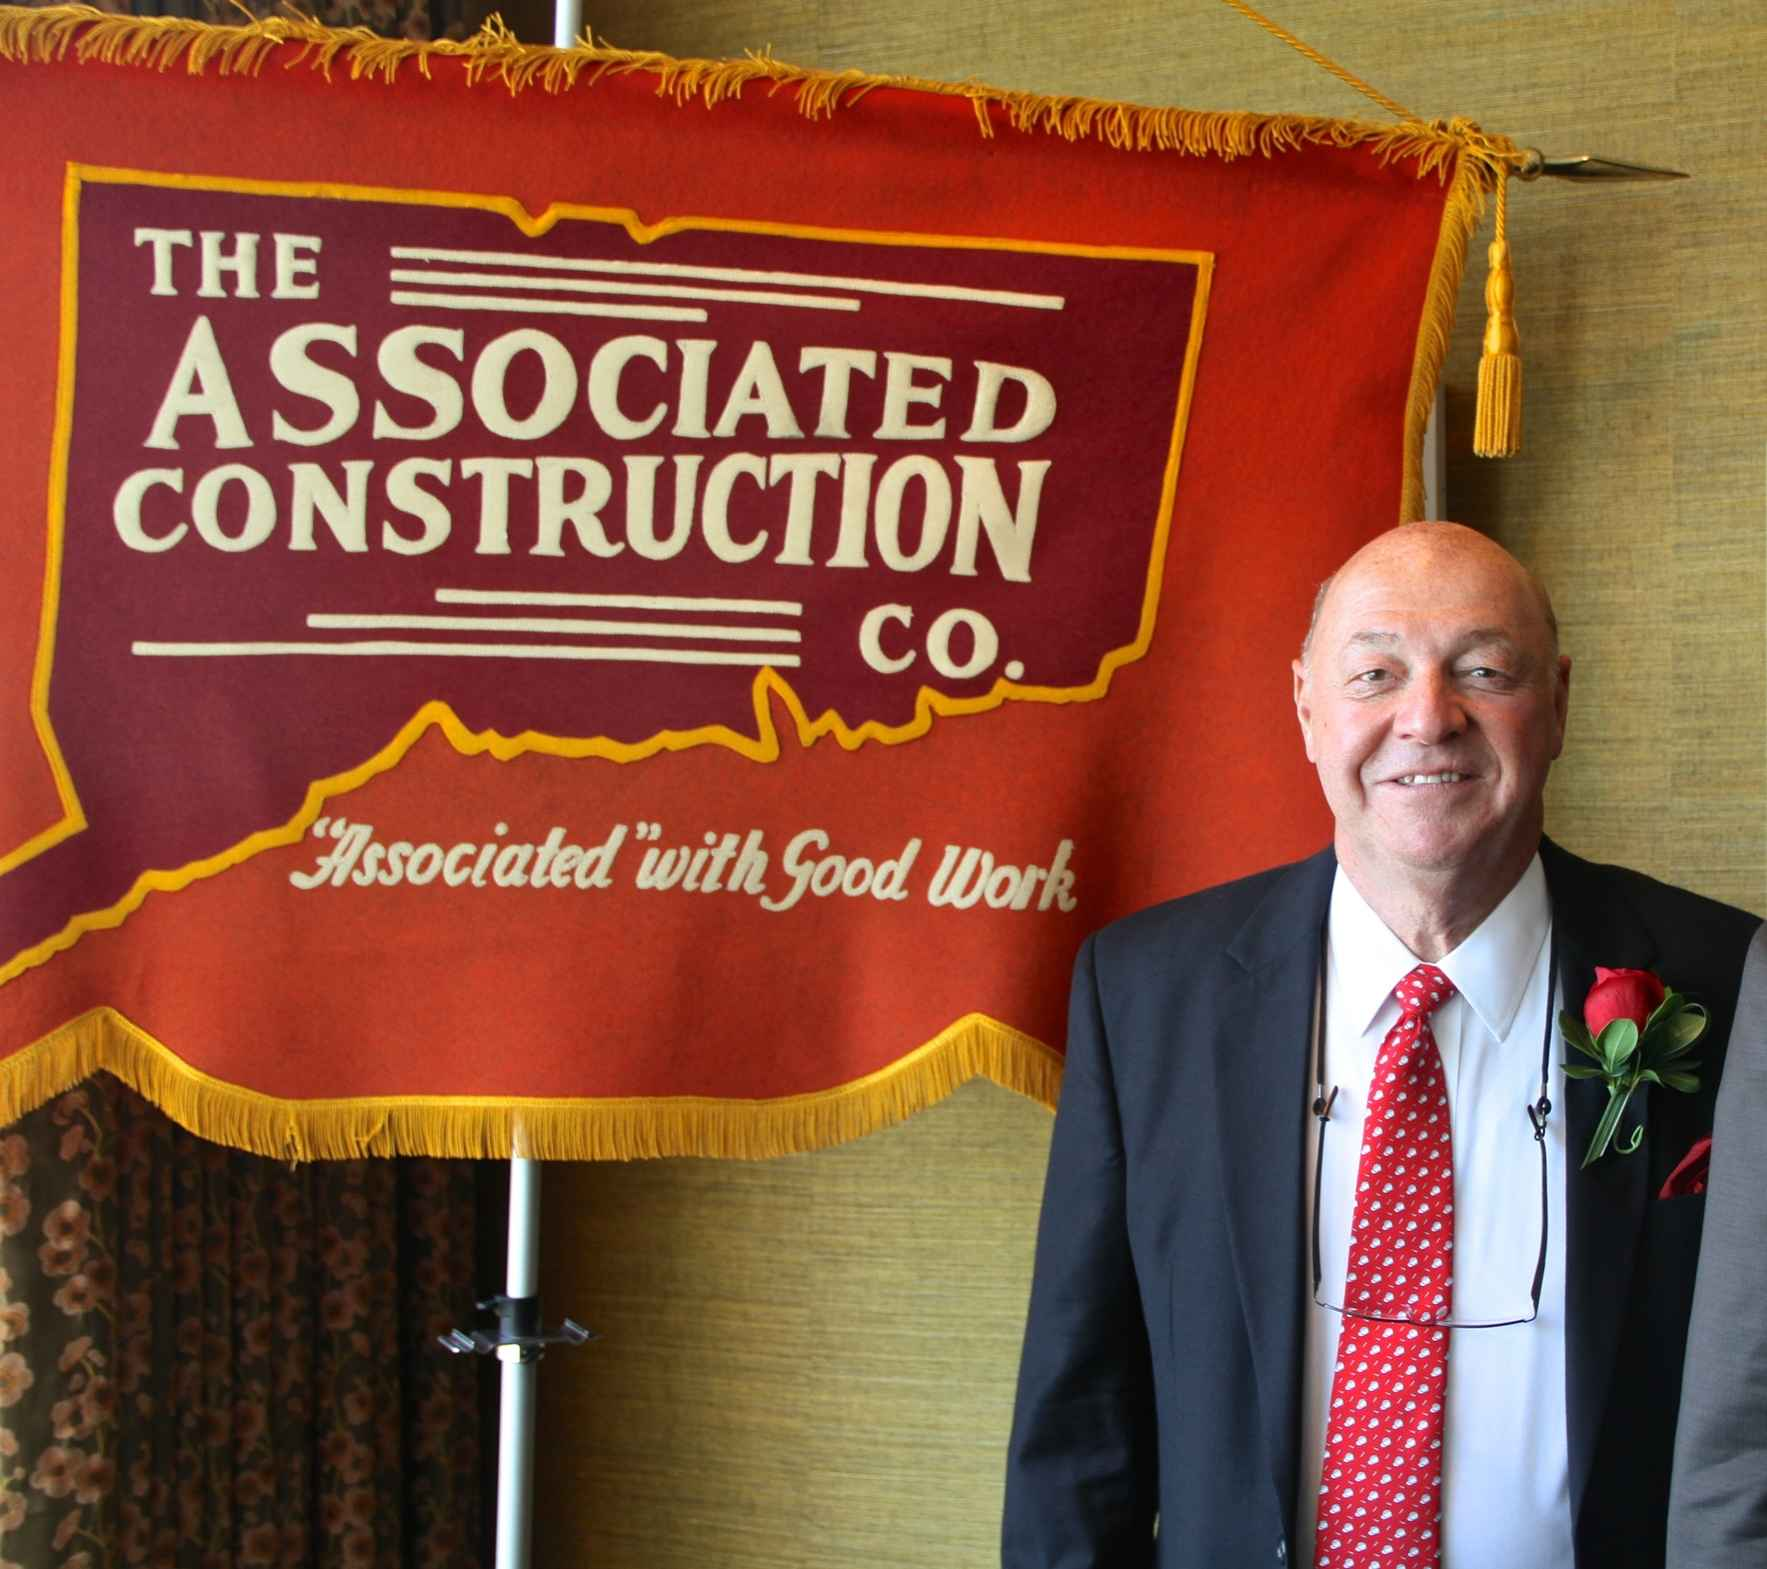 Join us in honoring Tom's memory and passion for the construction industry by donating today. image